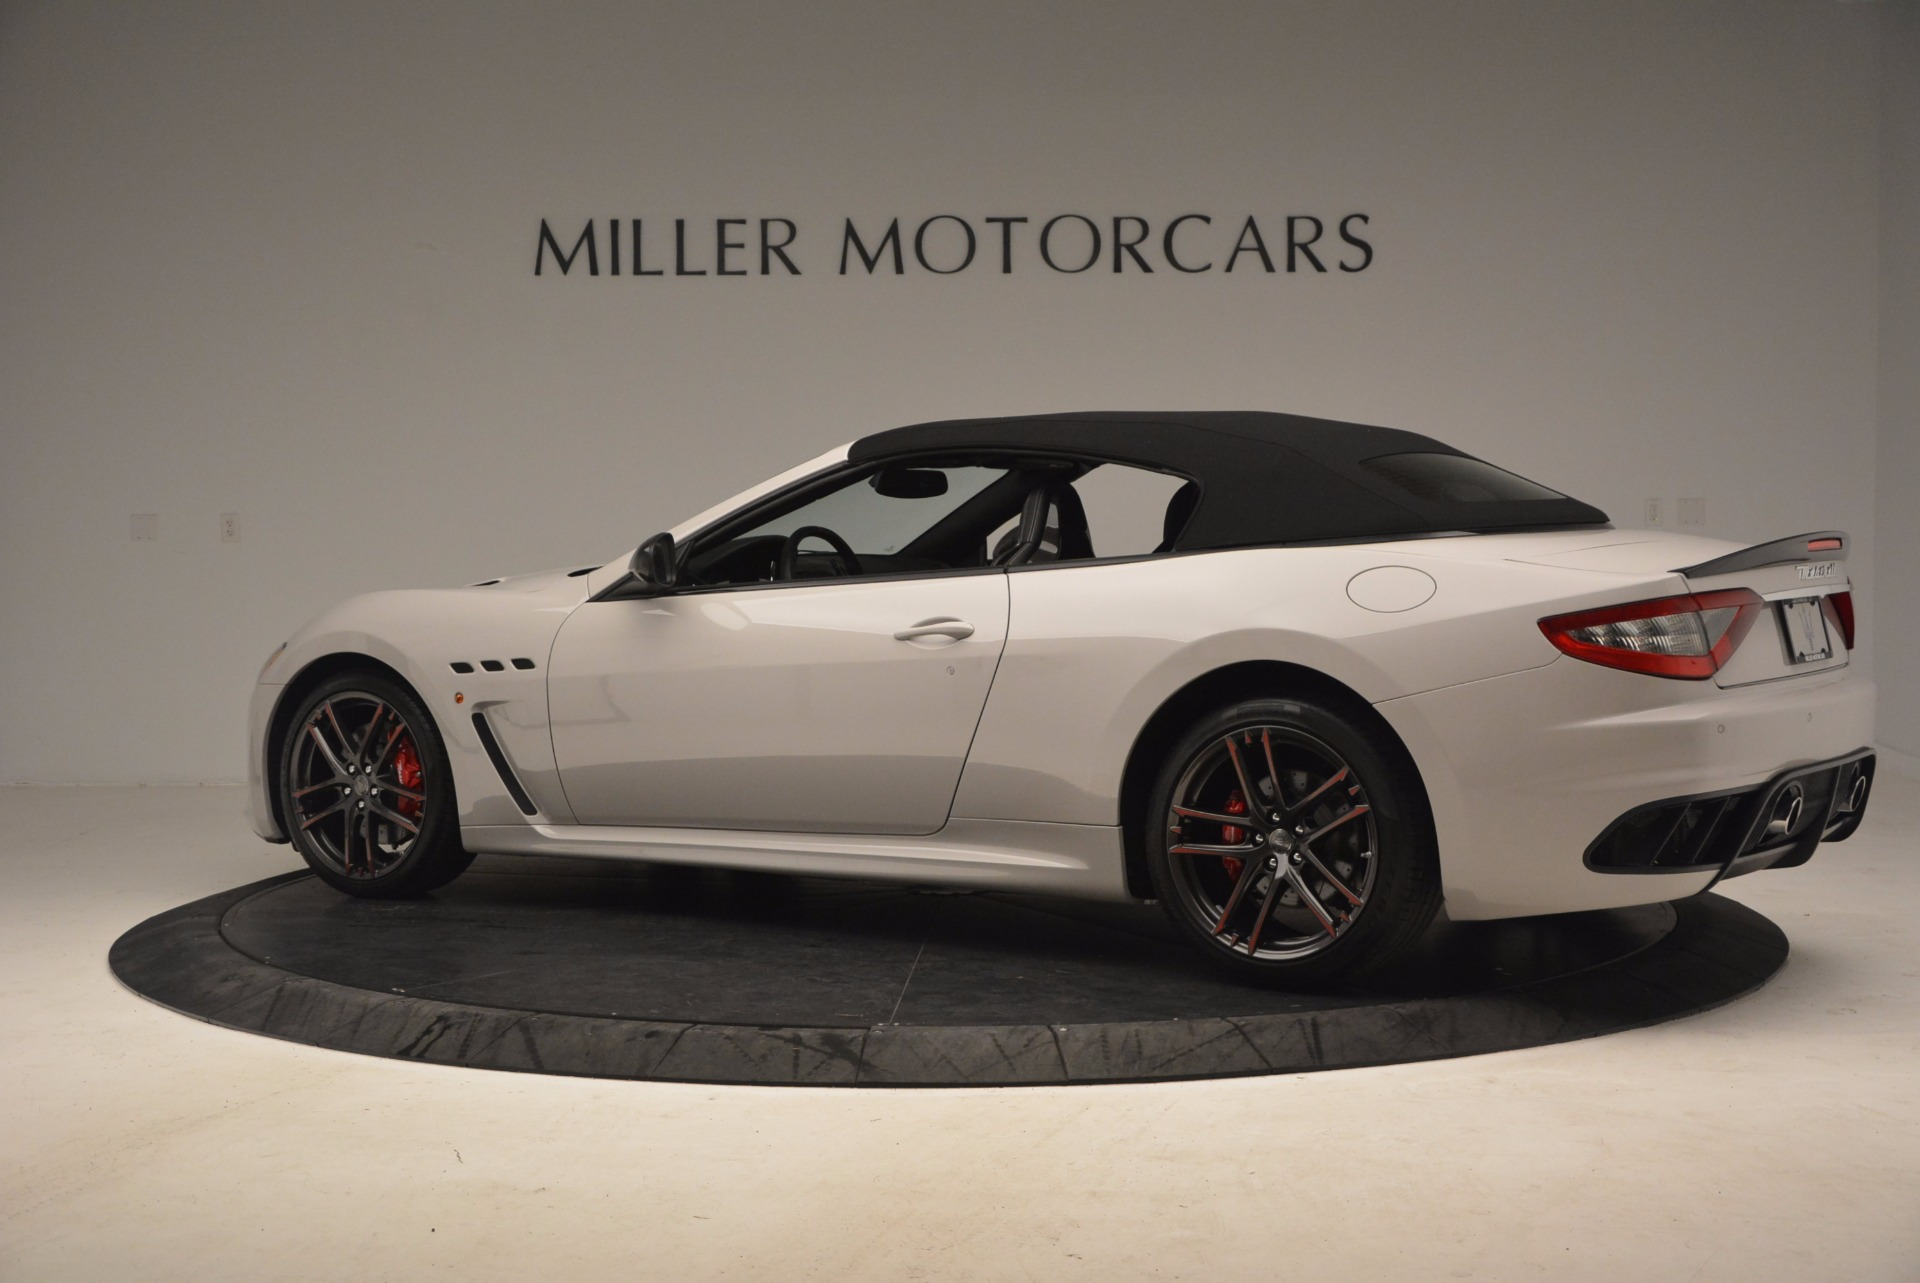 Used 2015 Maserati GranTurismo MC Centennial For Sale In Westport, CT 1107_p16